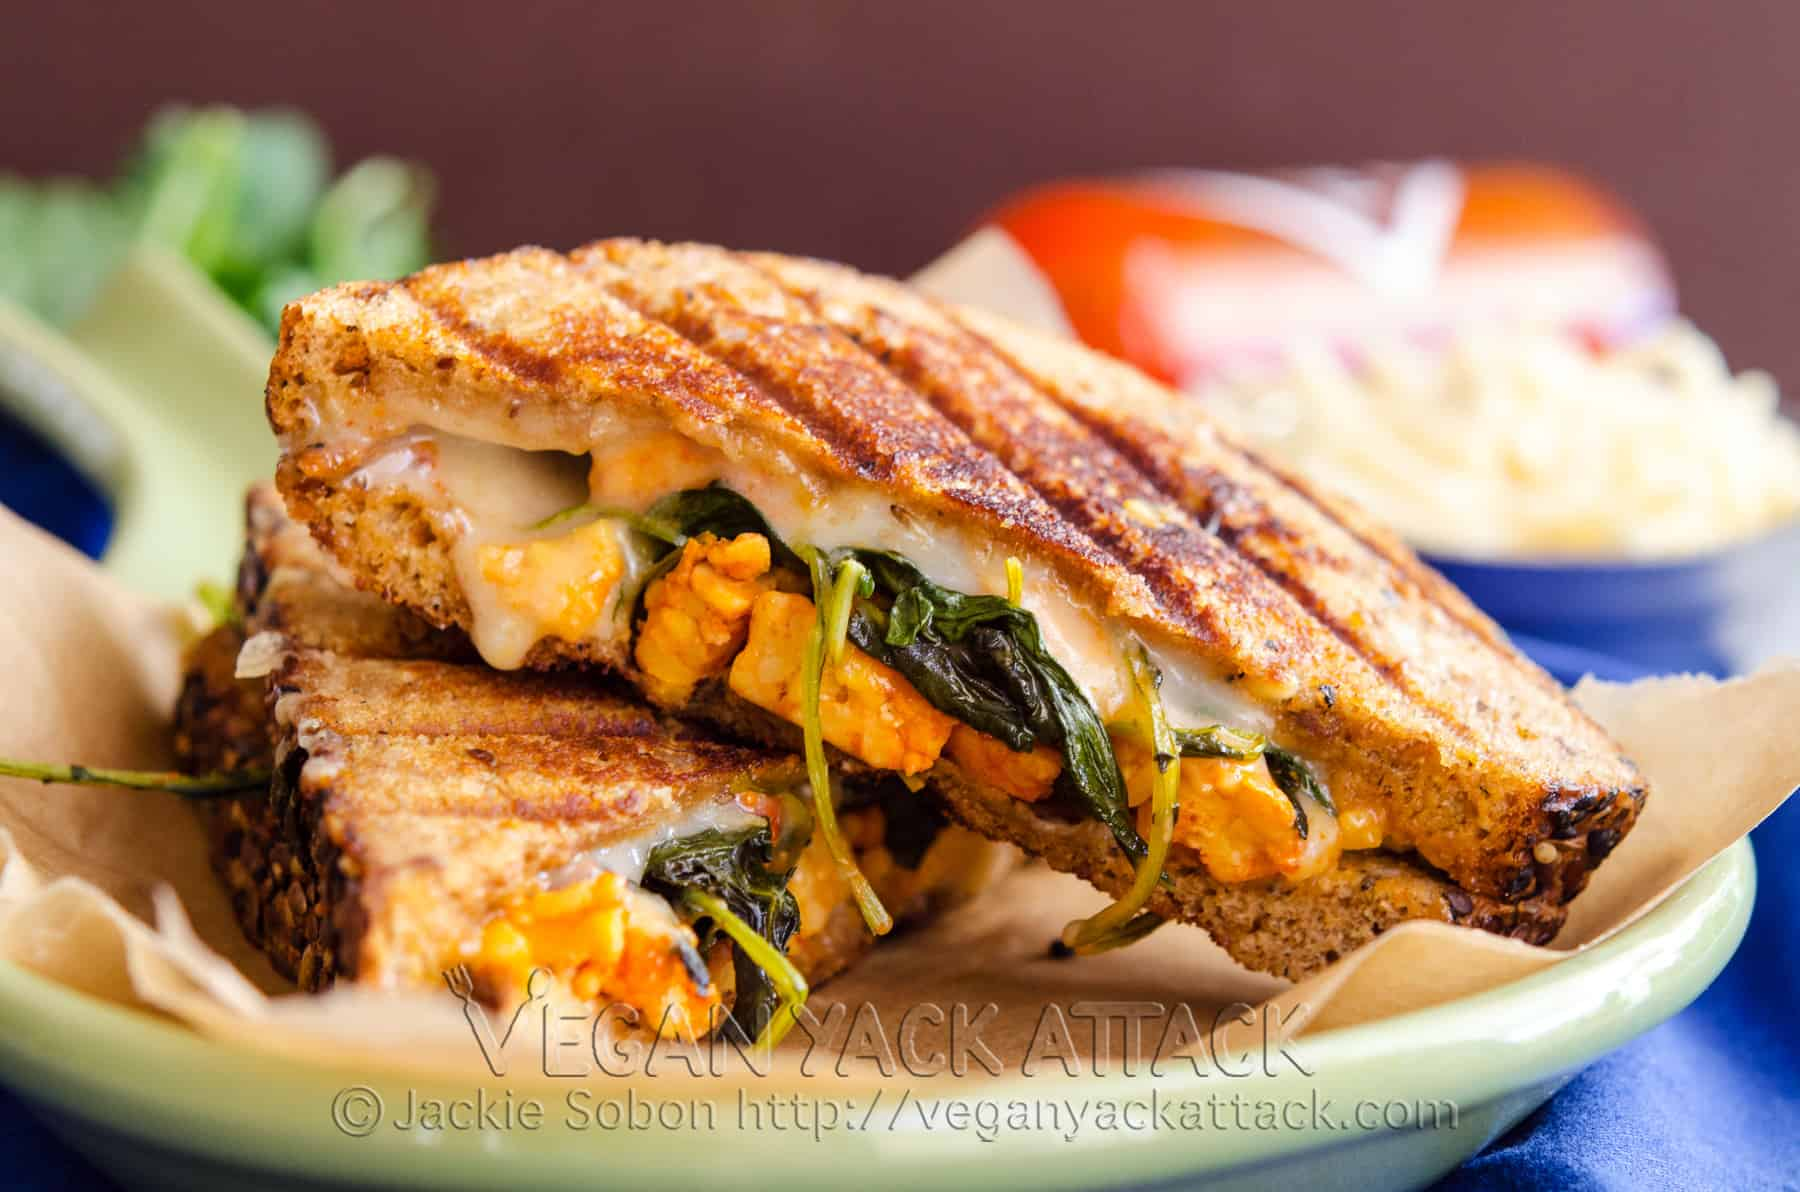 An nontraditional Grilled Buffalo Tempeh Mozzarella Sandwich, complete with spicy tempeh, kale, and melty vegan mozzarella.